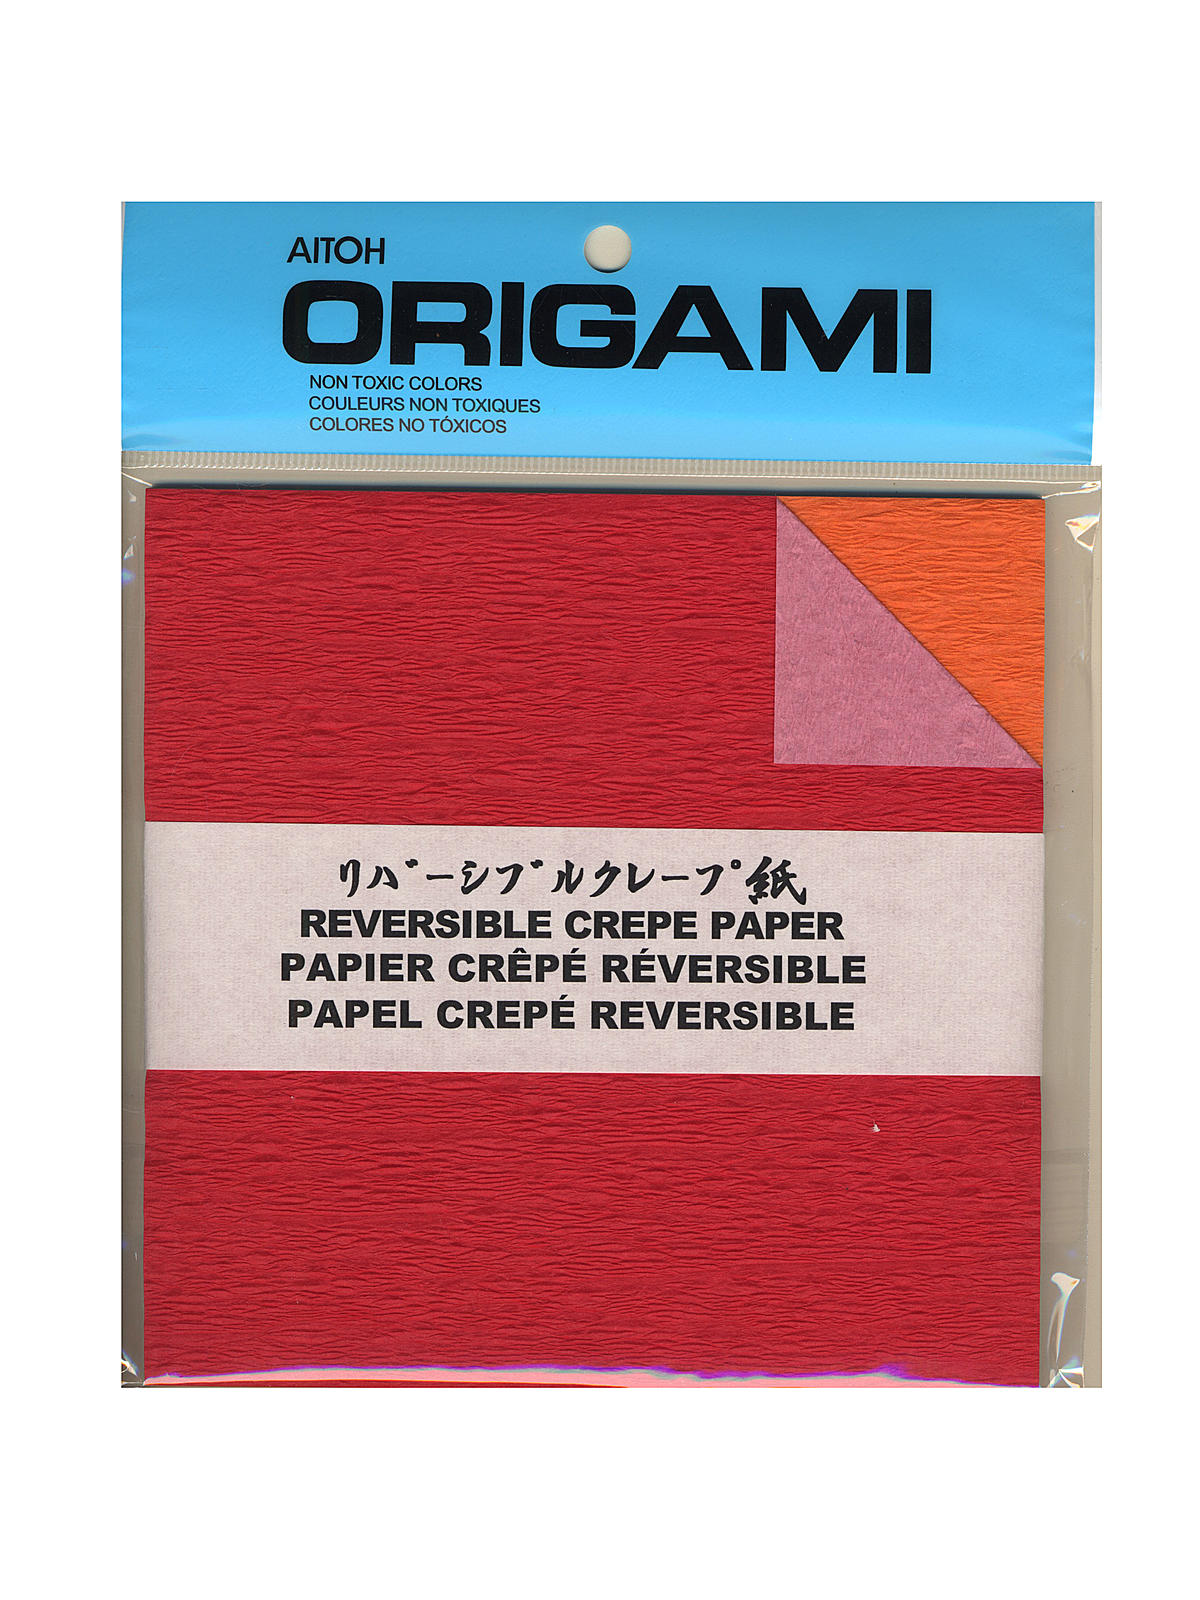 Origami Paper 6 In. X 6 In. Reversible Crepe 24 Sheets